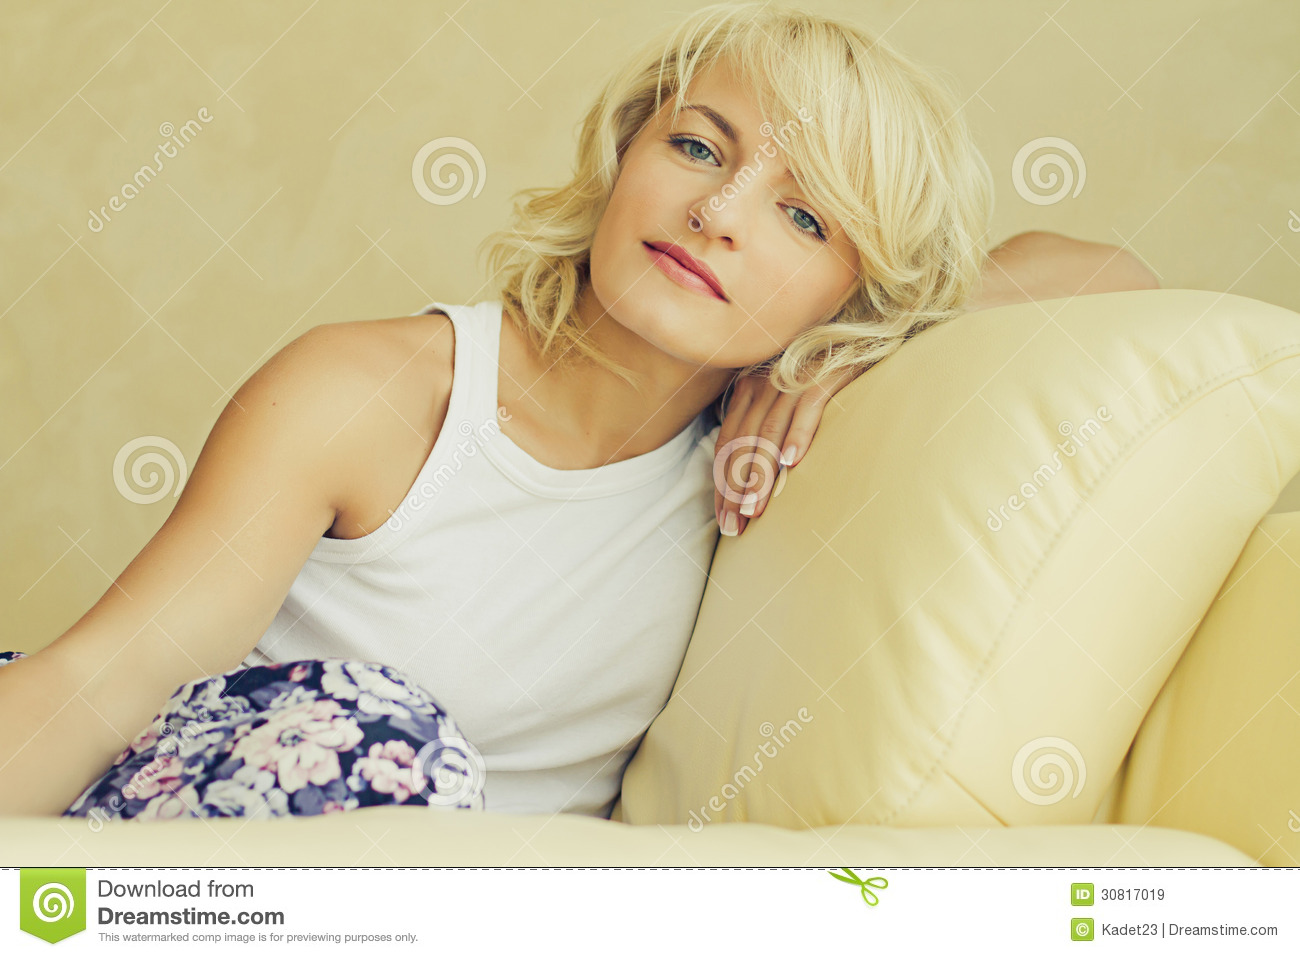 Free Sexmovie Blond Sofa Young Blond Woman Royalty Free Stock Images - Image: 30817019